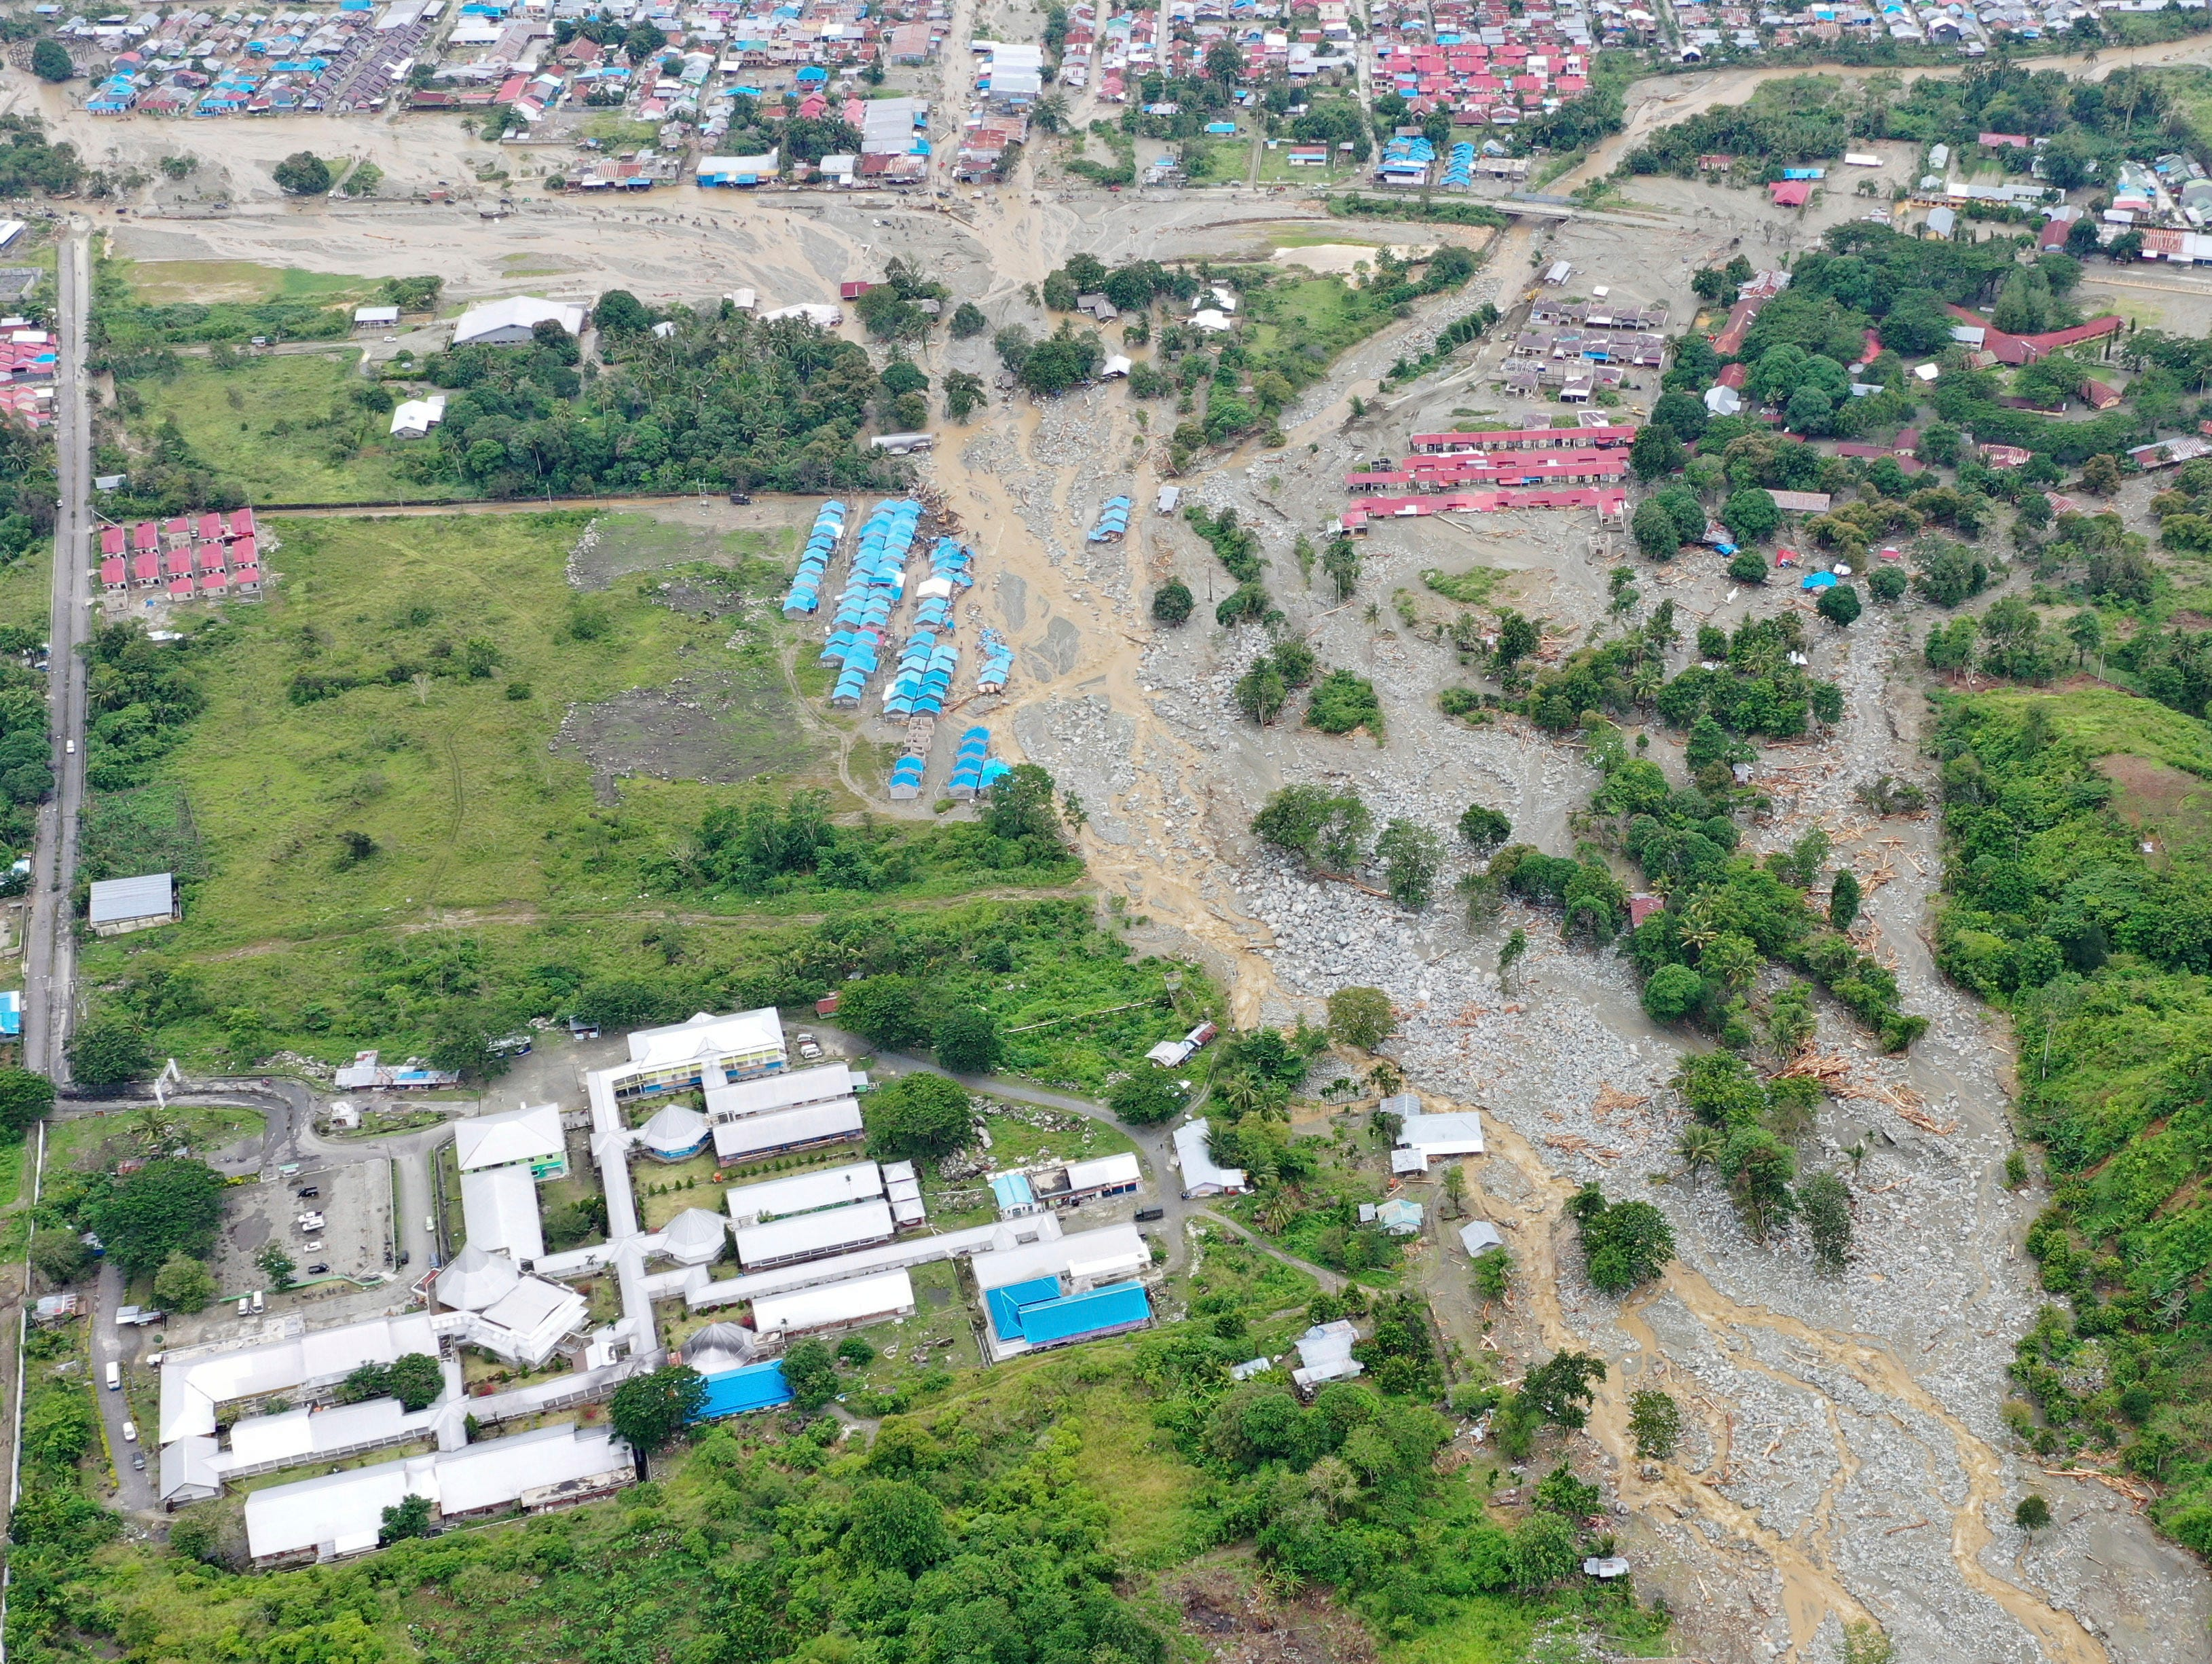 This aerial photo shows the area affected by flash floods in Sentani, Papua province, Indonesia, Monday, March 18, 2019. Flash floods and mudslides triggered by downpours tore through mountainside villages in Indonesia's easternmost province, killing dozens of people, disaster officials said.